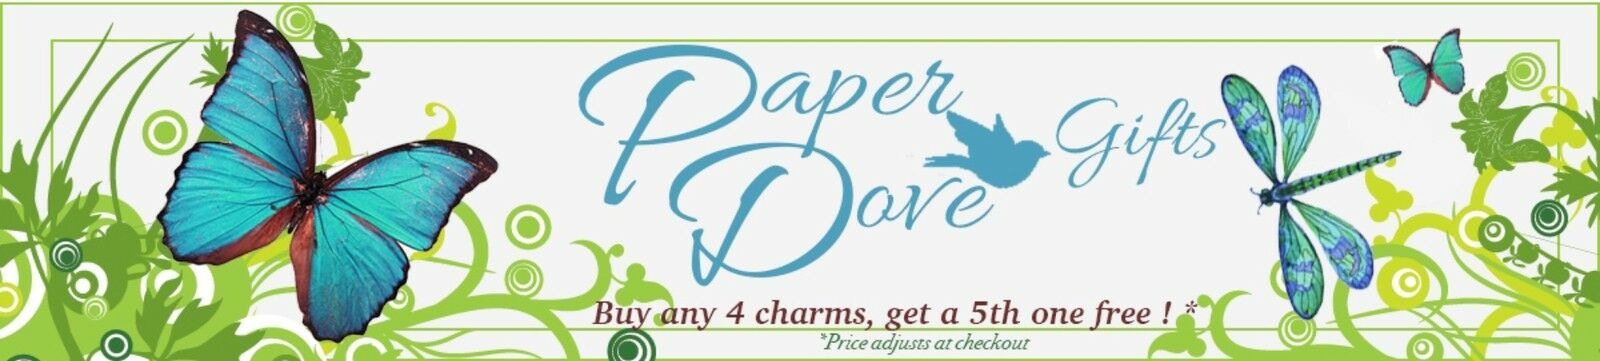 Paper Dove Gifts